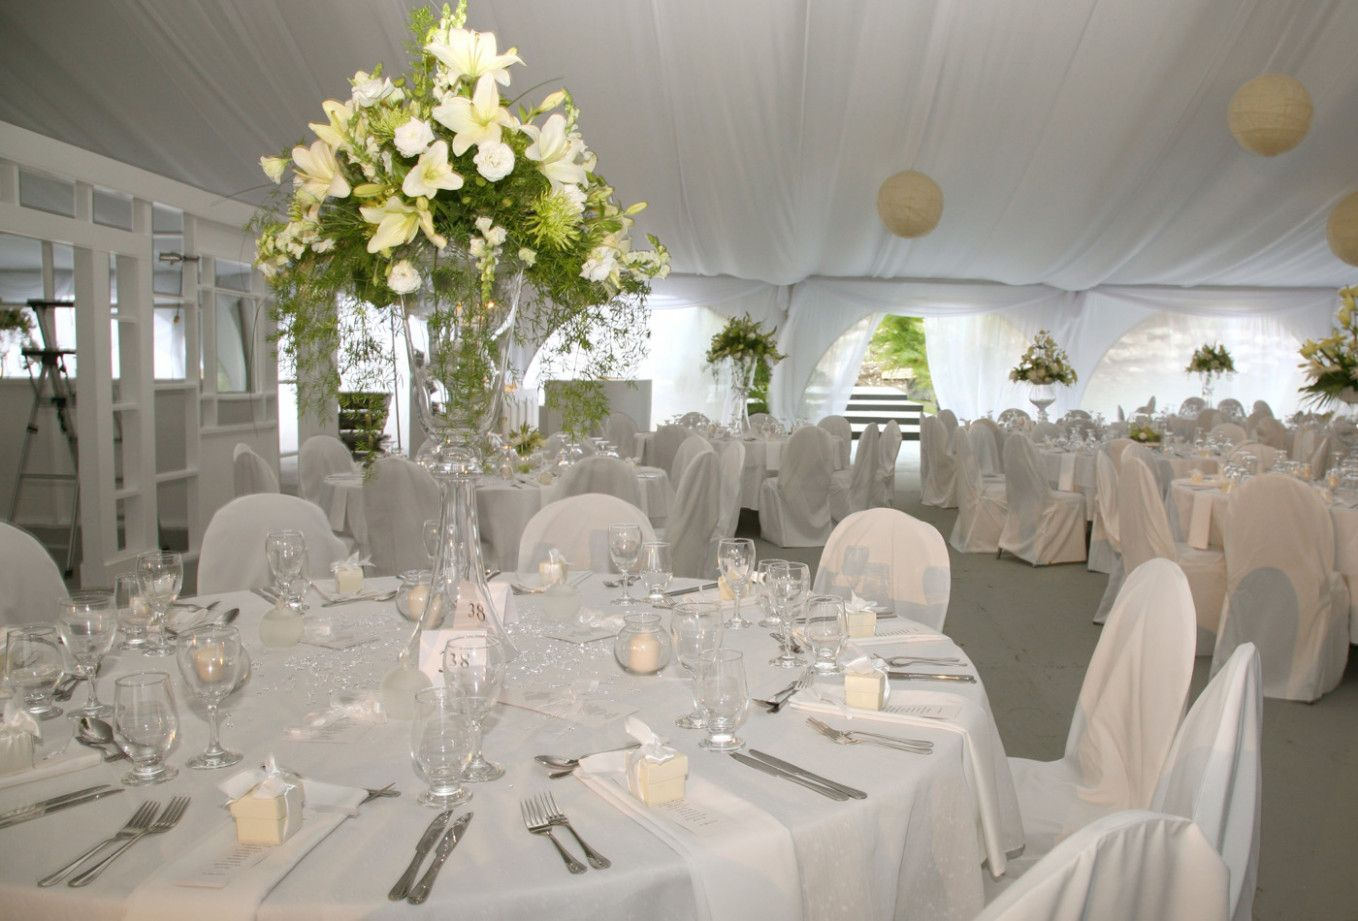 White wedding decor ideas  White Wedding Favors Receptions  wedding hairstyles and makeup